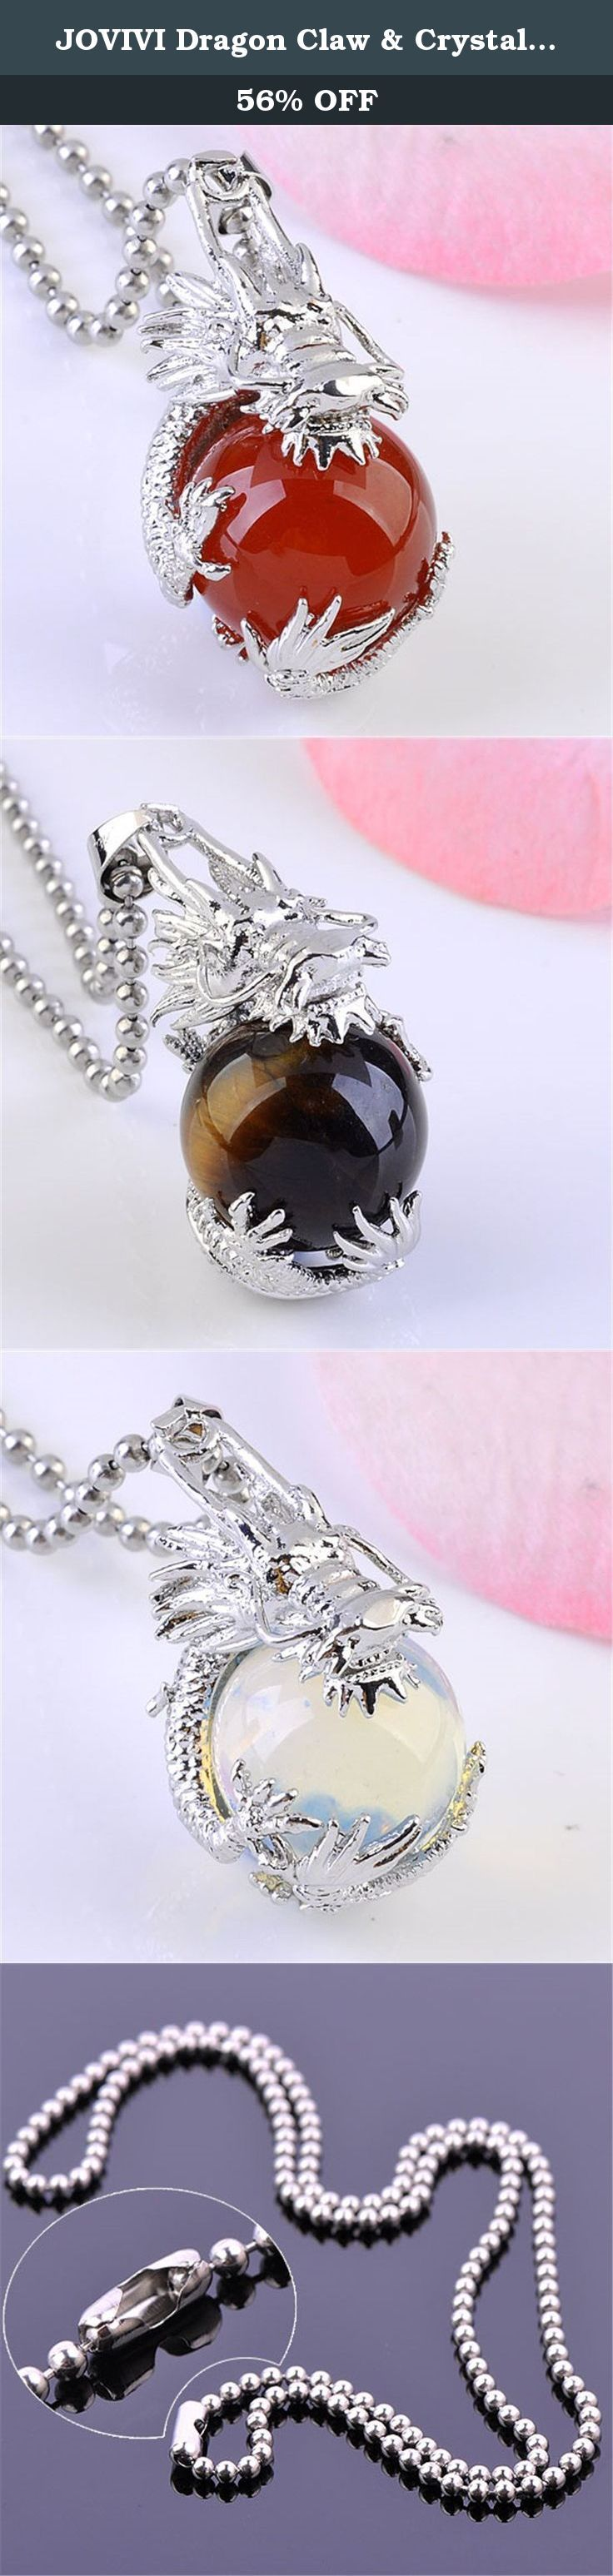 JOVIVI Dragon Claw & Crystal Ball Pendant Chain Necklace (Tiger Eye&Opalite&Red Agate). weight:14g Pakcage Content: 3 x Dragon Ball Beads Pendant 3x Stainless Steel Ball Chain Necklace 1x Black Velvet Gift Bag *Thank you for visiting Jovivi Store. We are specializing in jewelry making beads and findings. *If you like this product, we advise you add it to wish list now, so that we will inform you immediately once it has a discount. *And you can click our brand name which on the top of the...